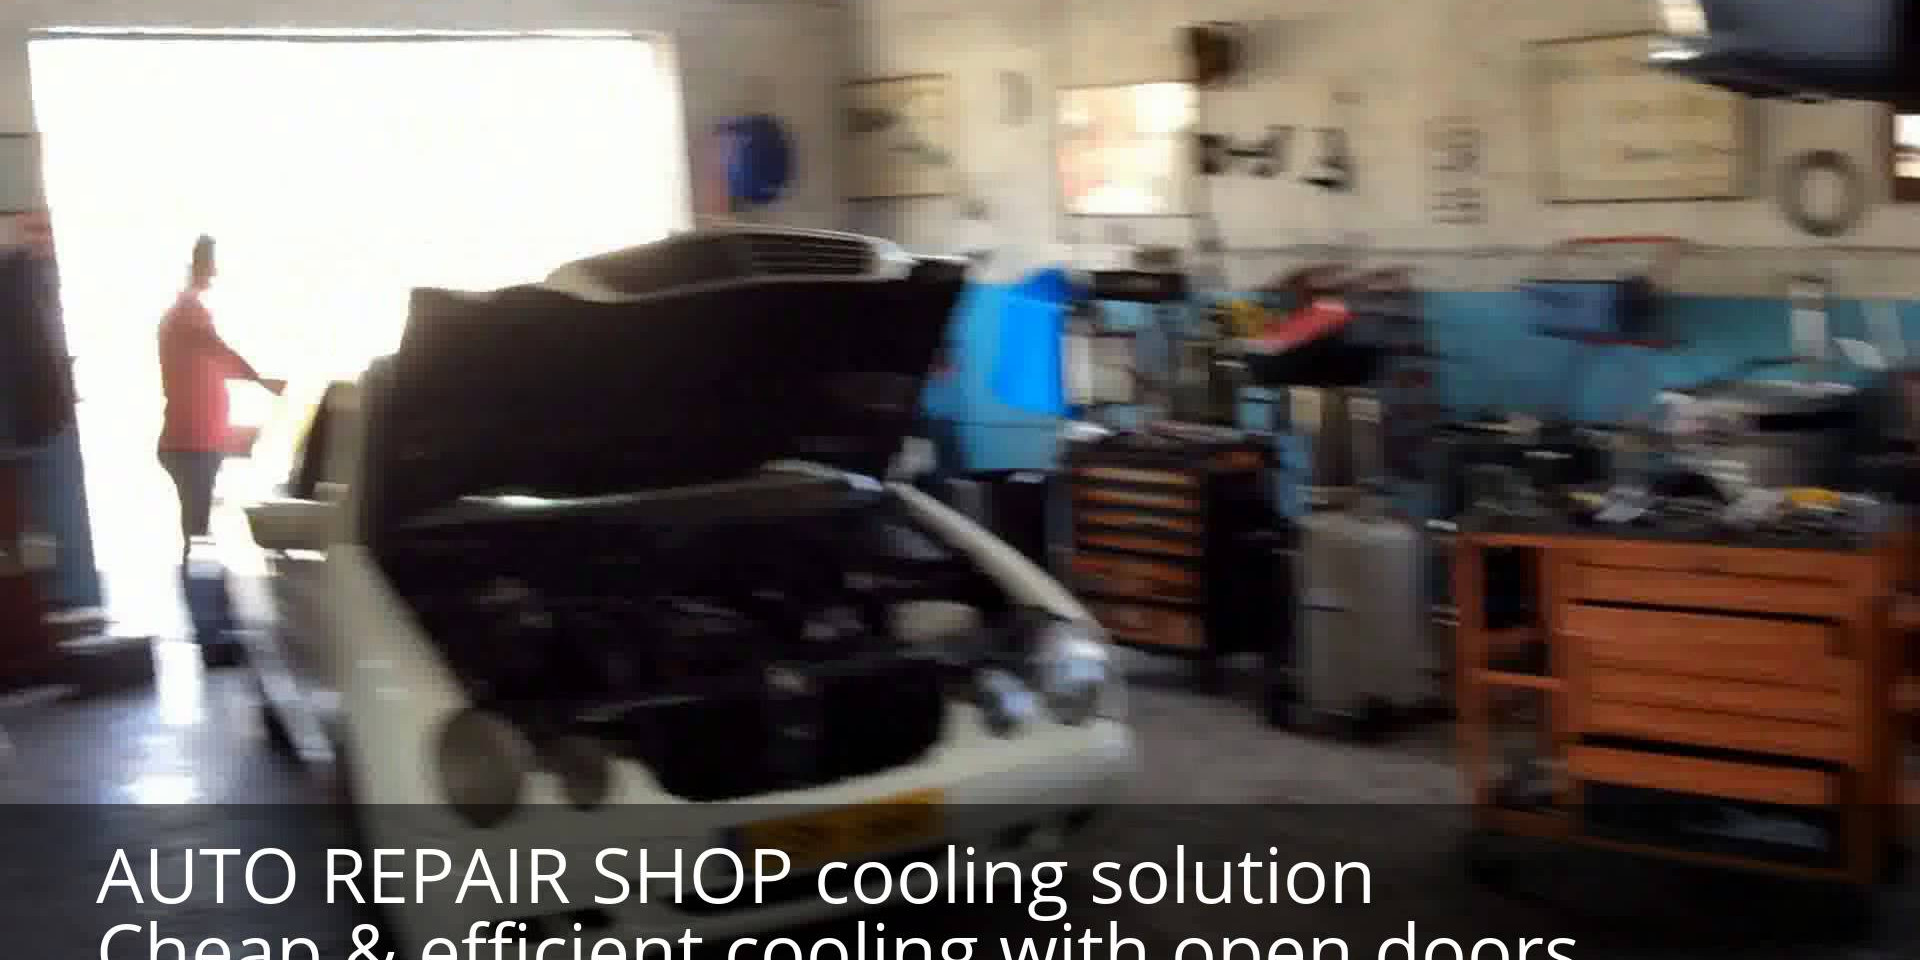 AUTO REAPAIR SHOP COOLING CASE STUDY